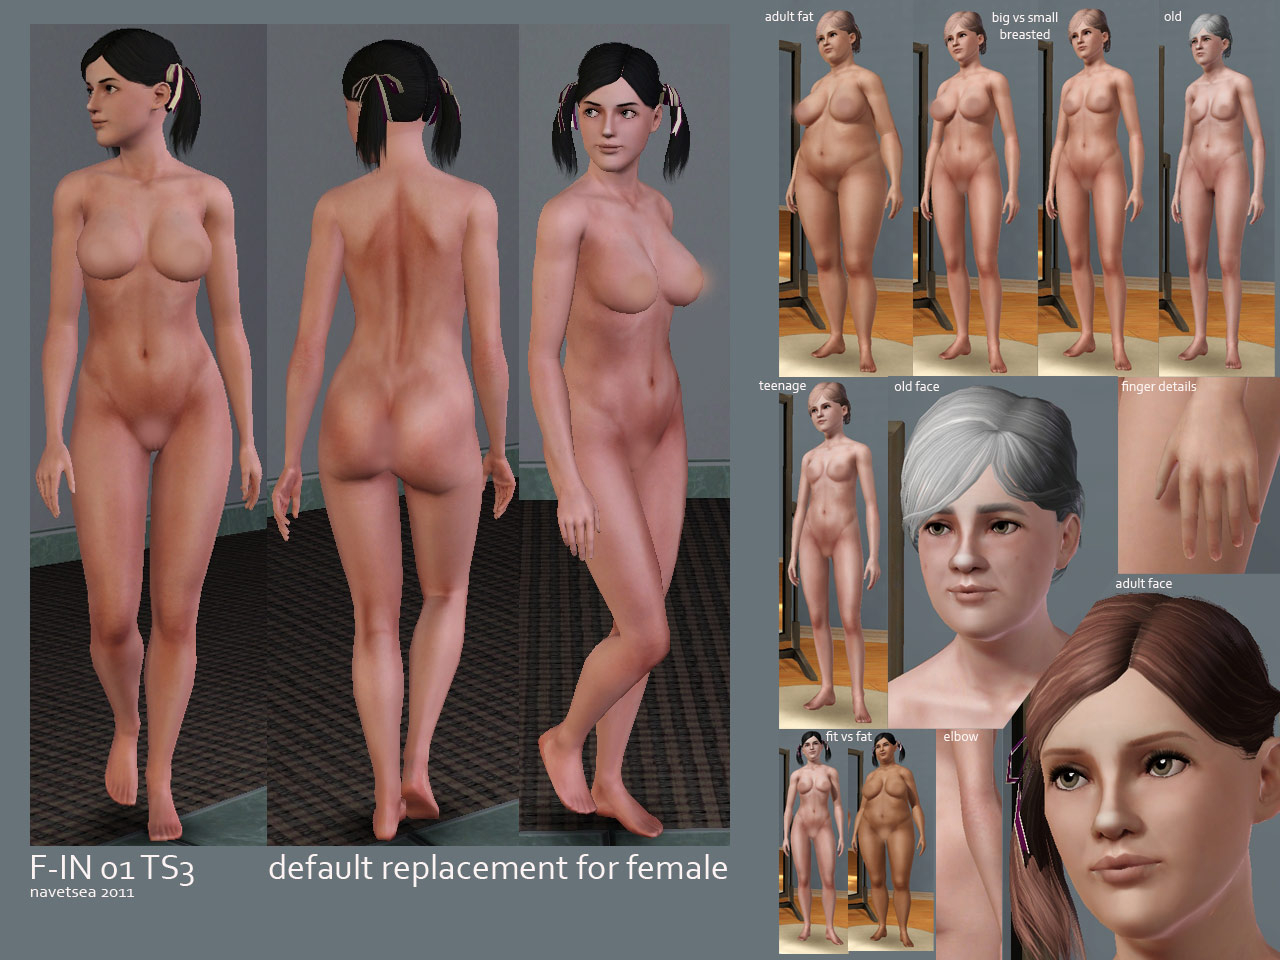 The sims 8 in 1 nude naked  adult images